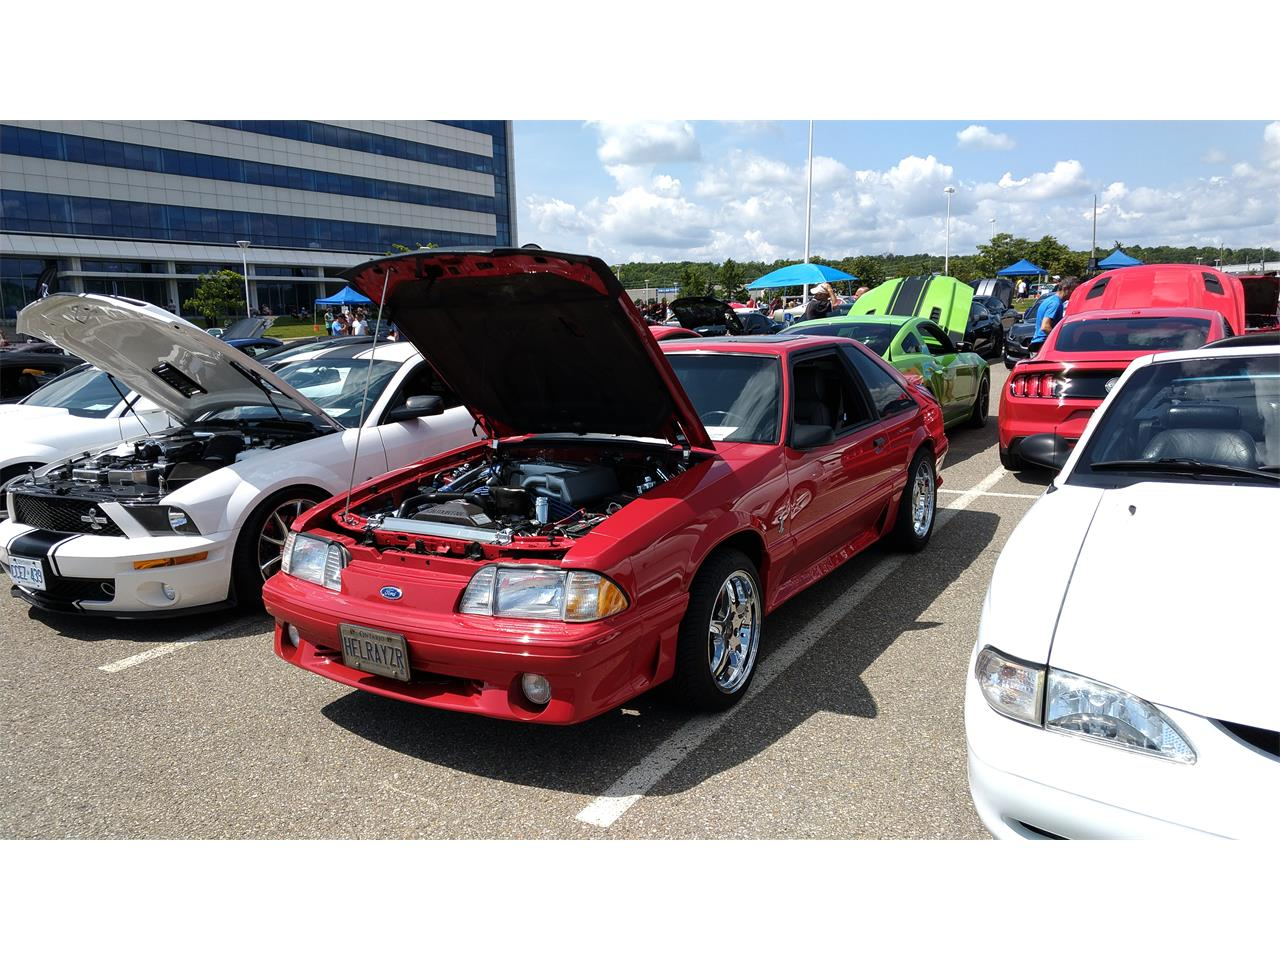 Large Picture of '87 Mustang Cobra - $15,000.00 Offered by a Private Seller - PSFC